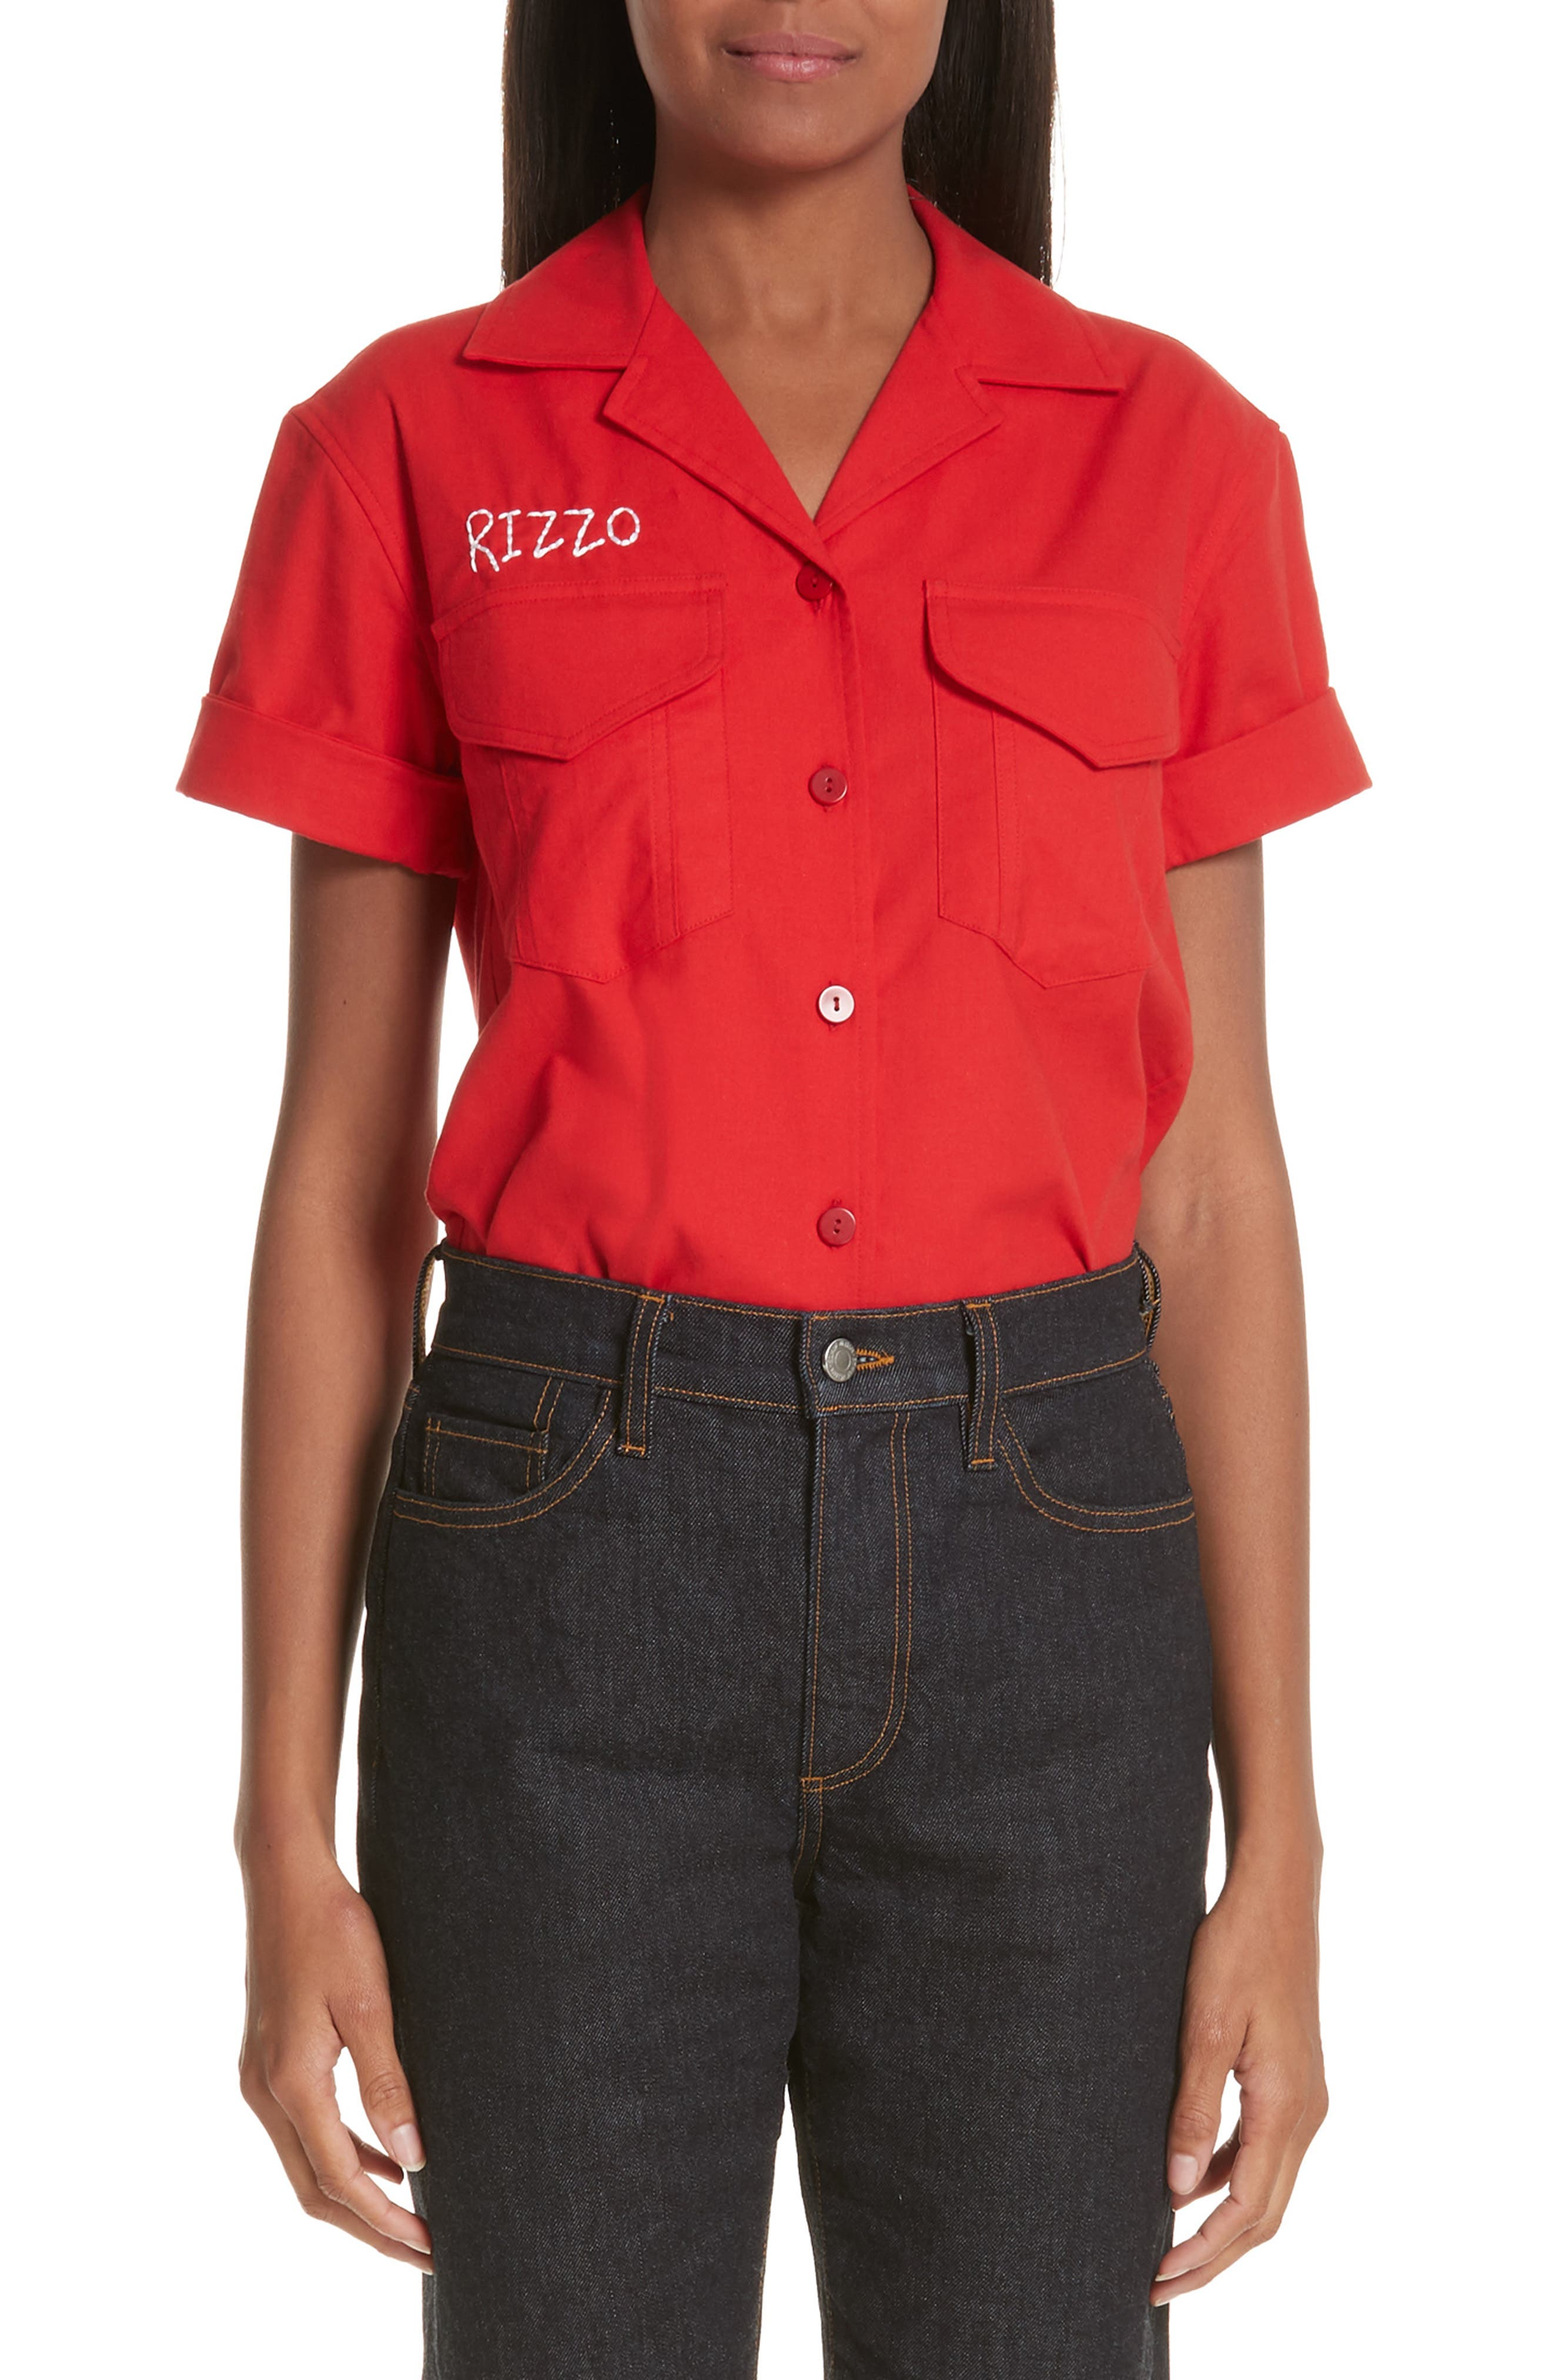 x Paramount Grease Rizzo Embroidered Mechanic Shirt,                             Main thumbnail 1, color,                             RIZZO RED